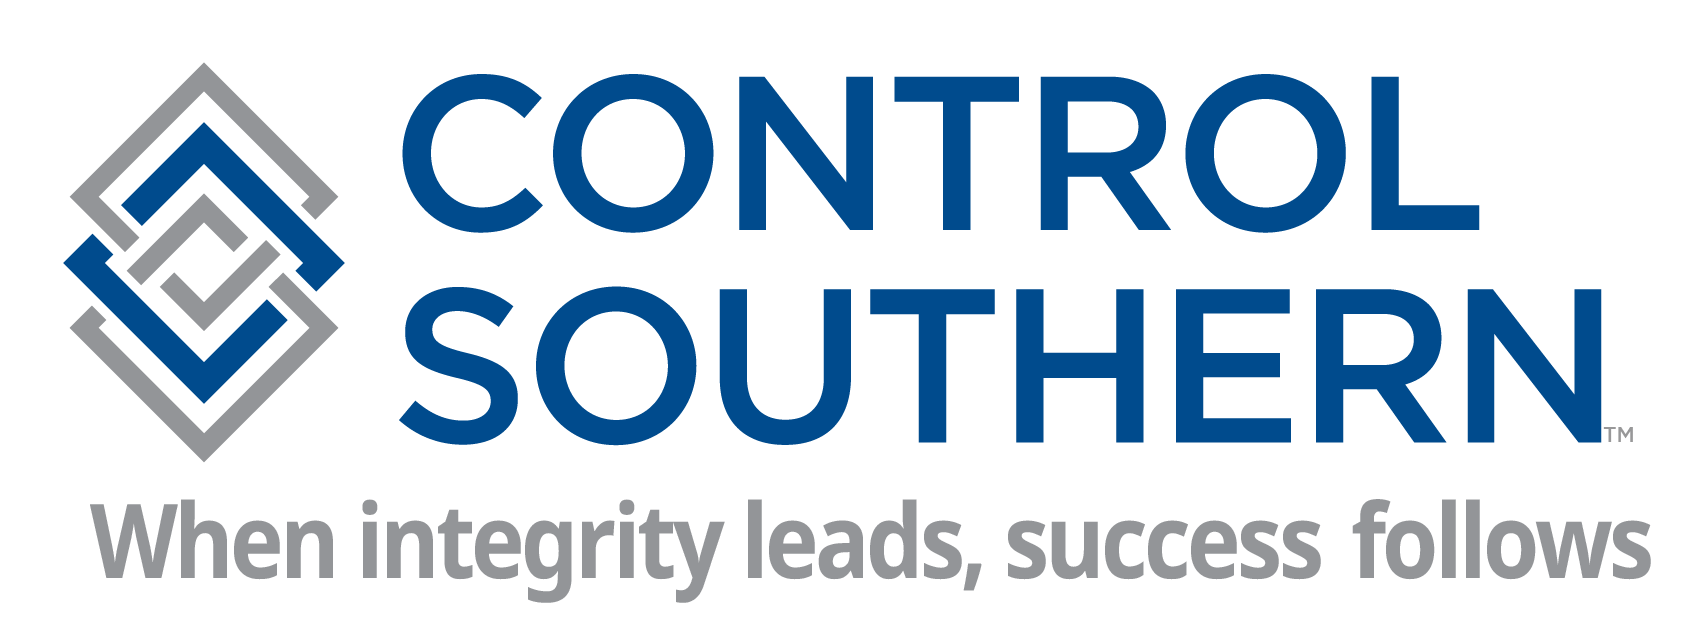 ControlSouthern logo